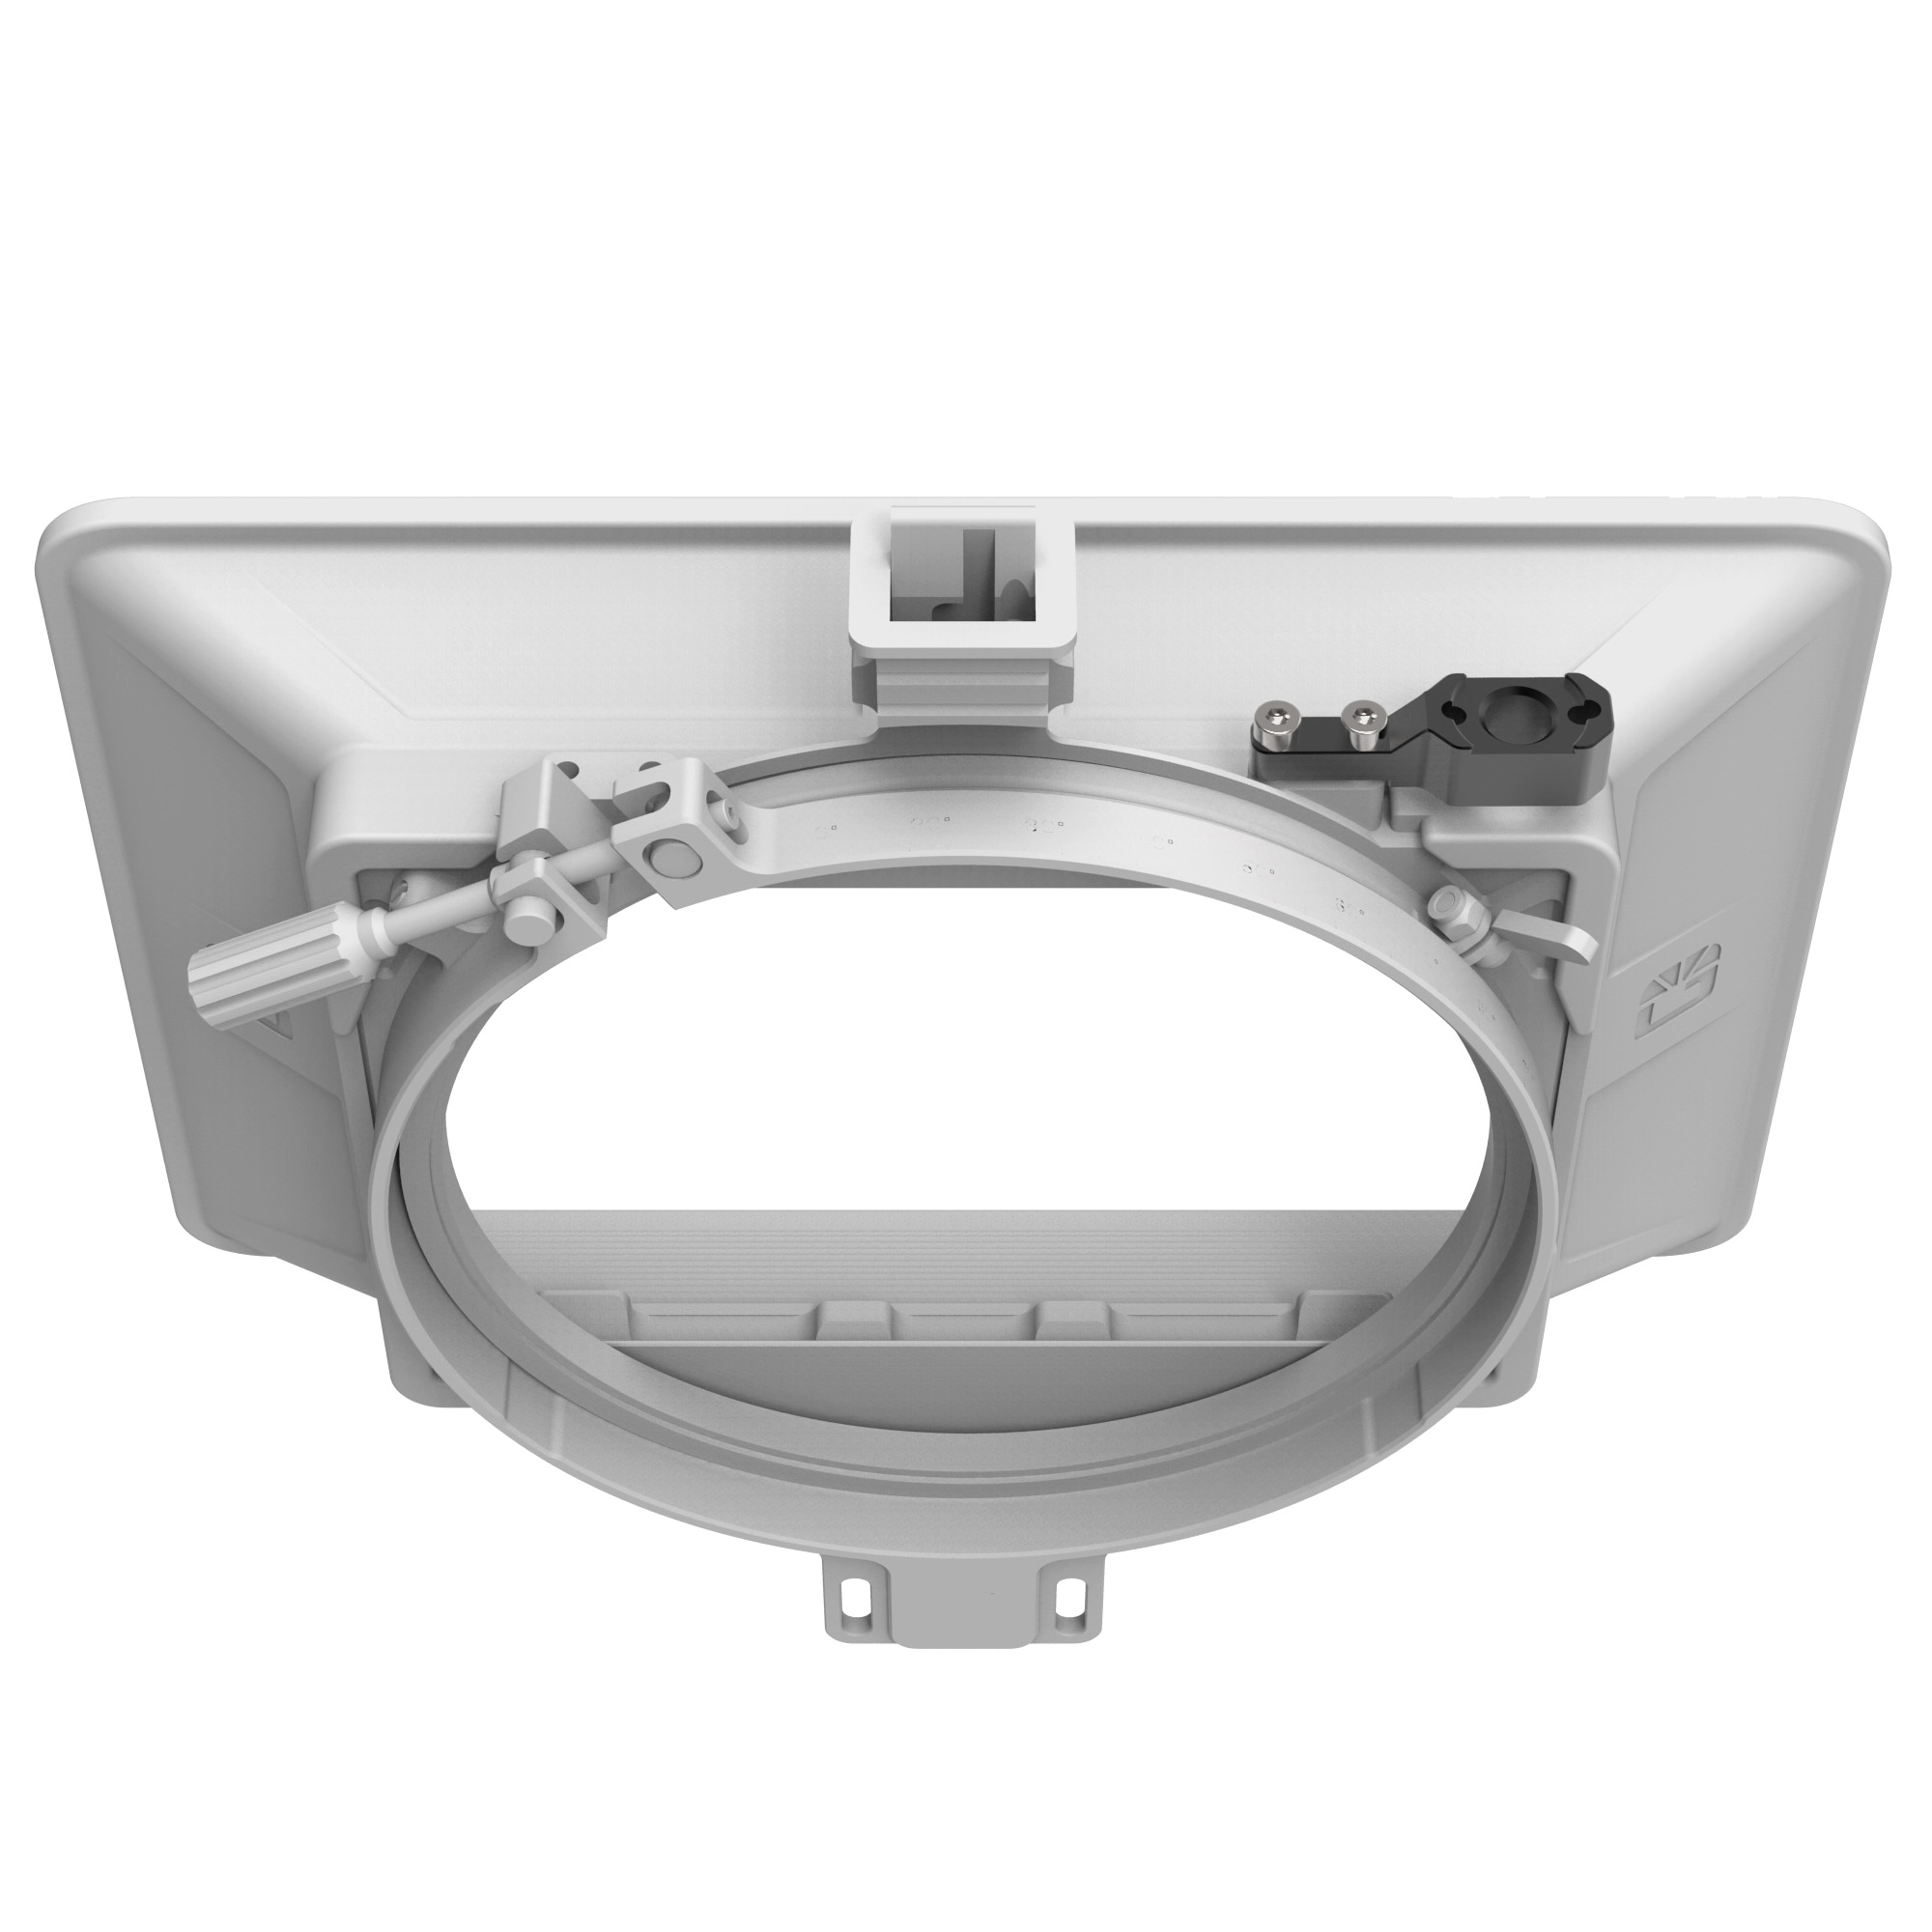 B1220.1004 Accessory Mount for Clash 138 5